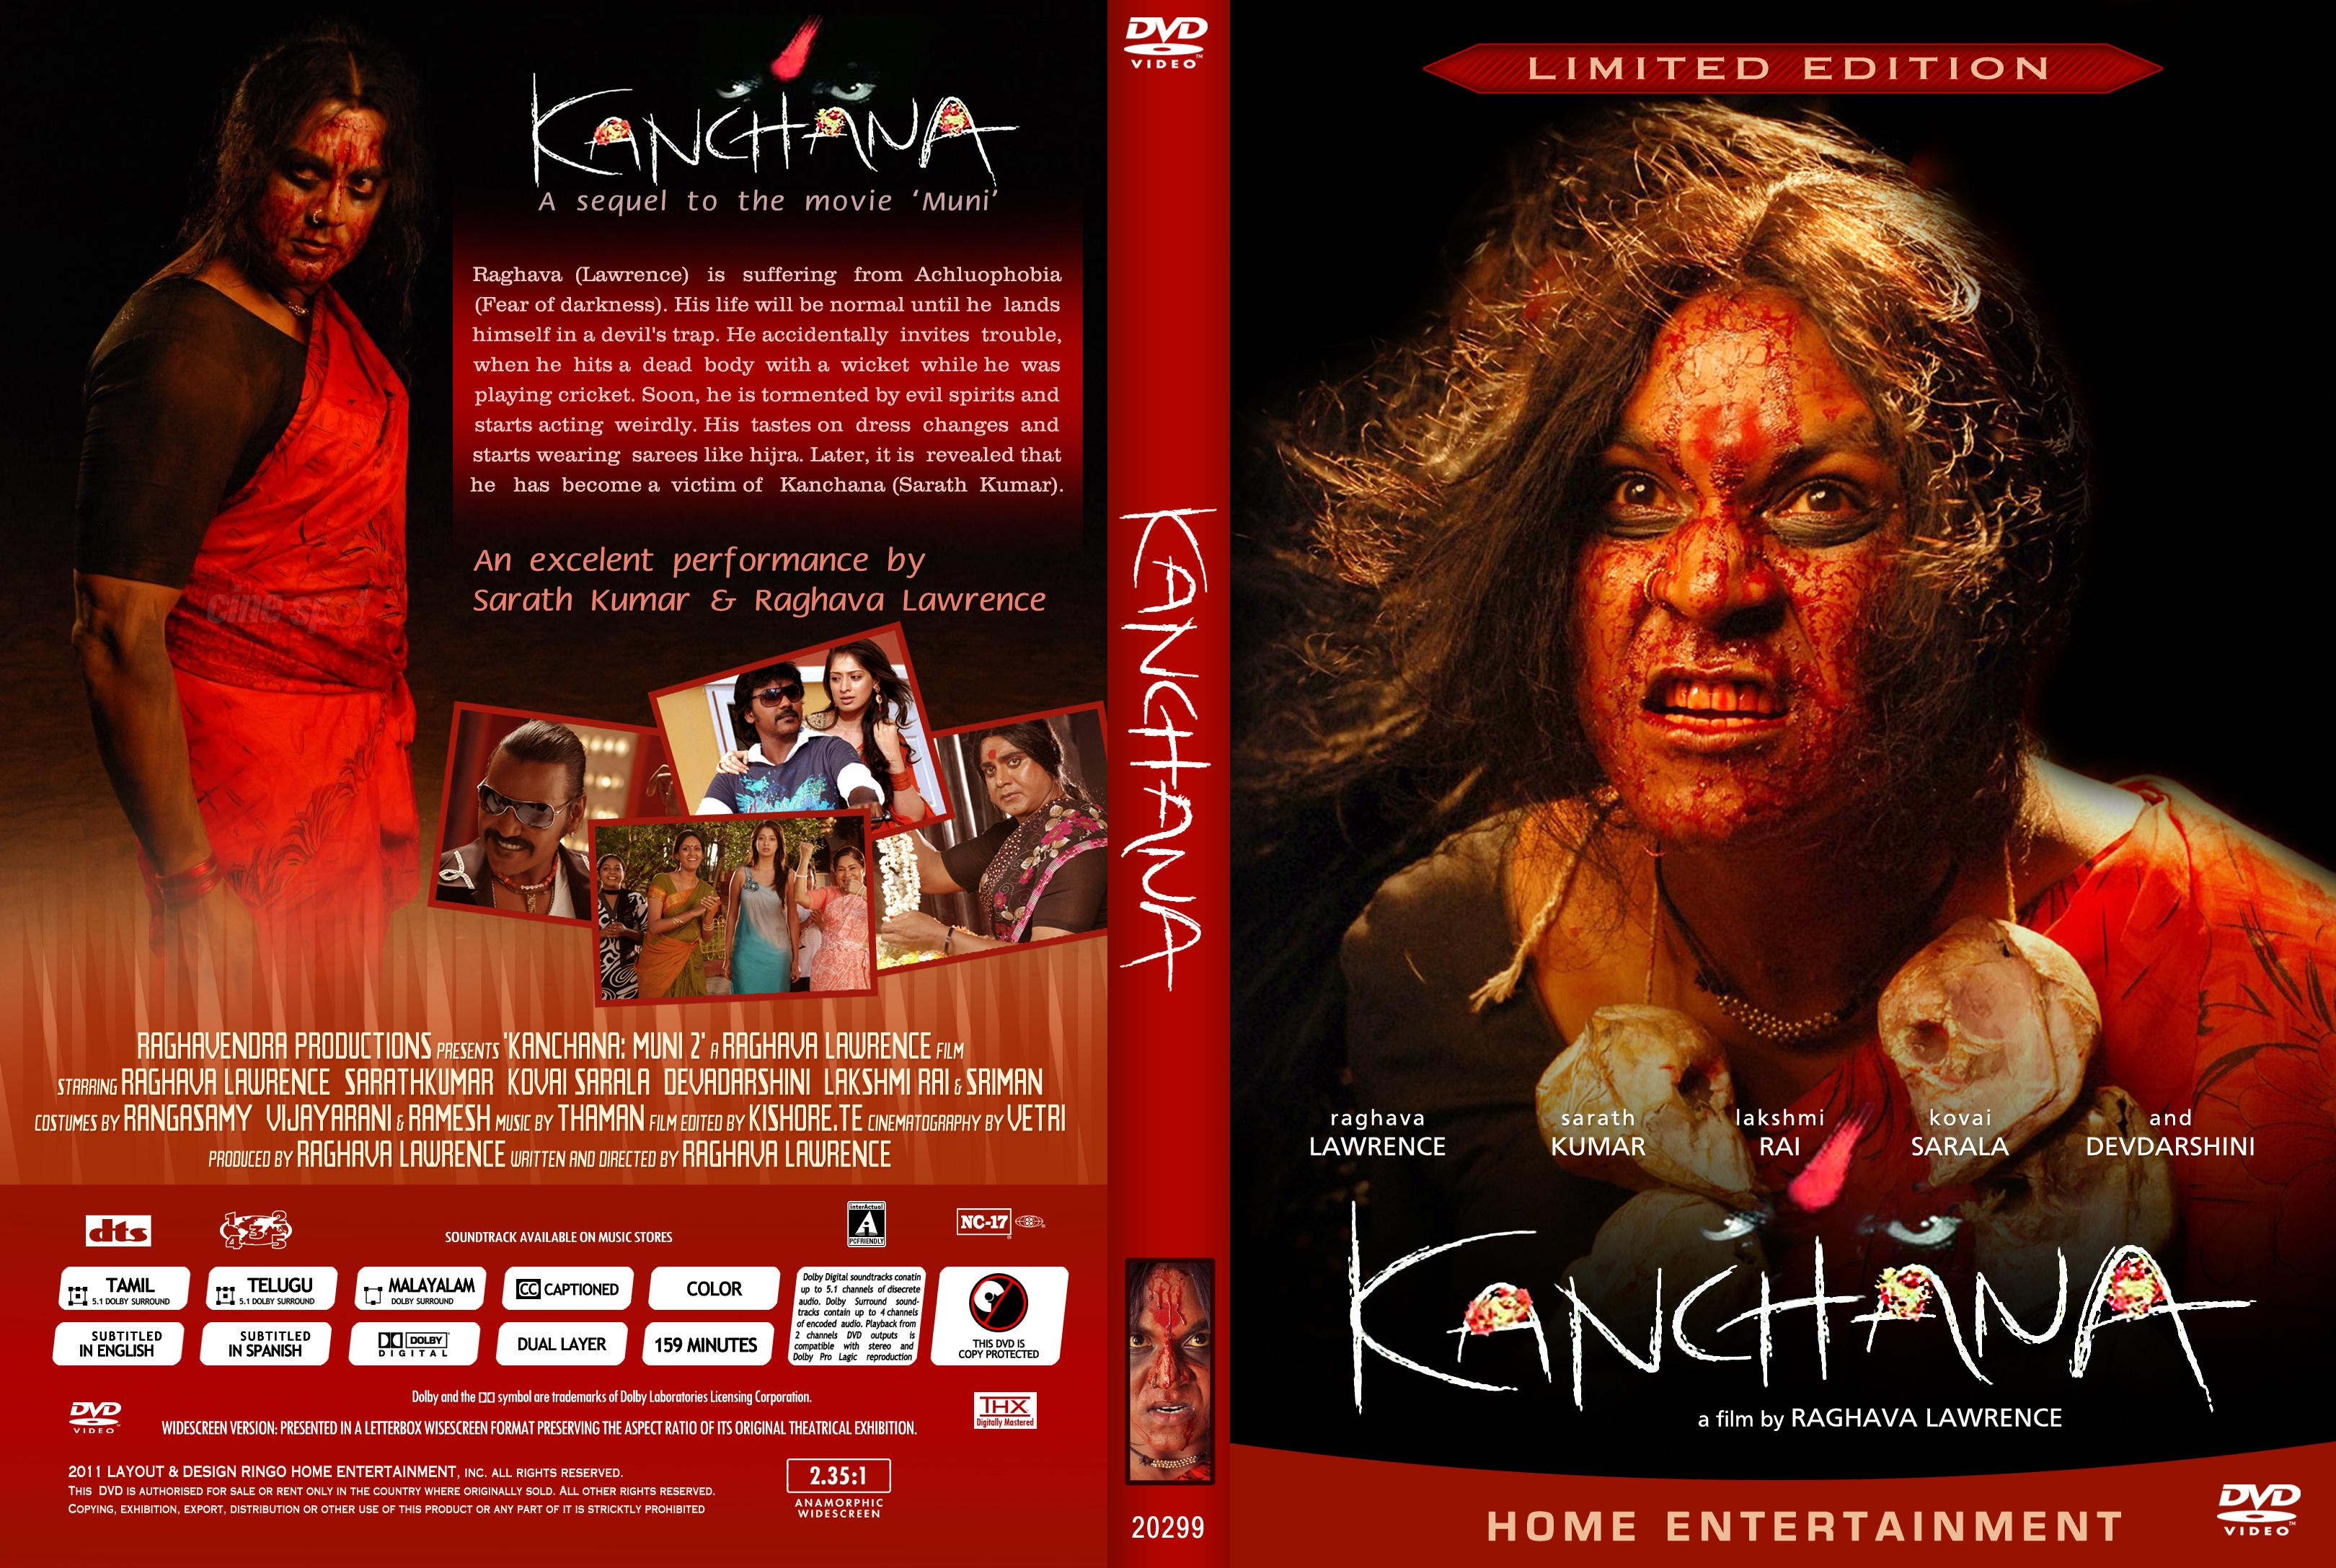 kanchana 2 muni 3 tamil full movie free download